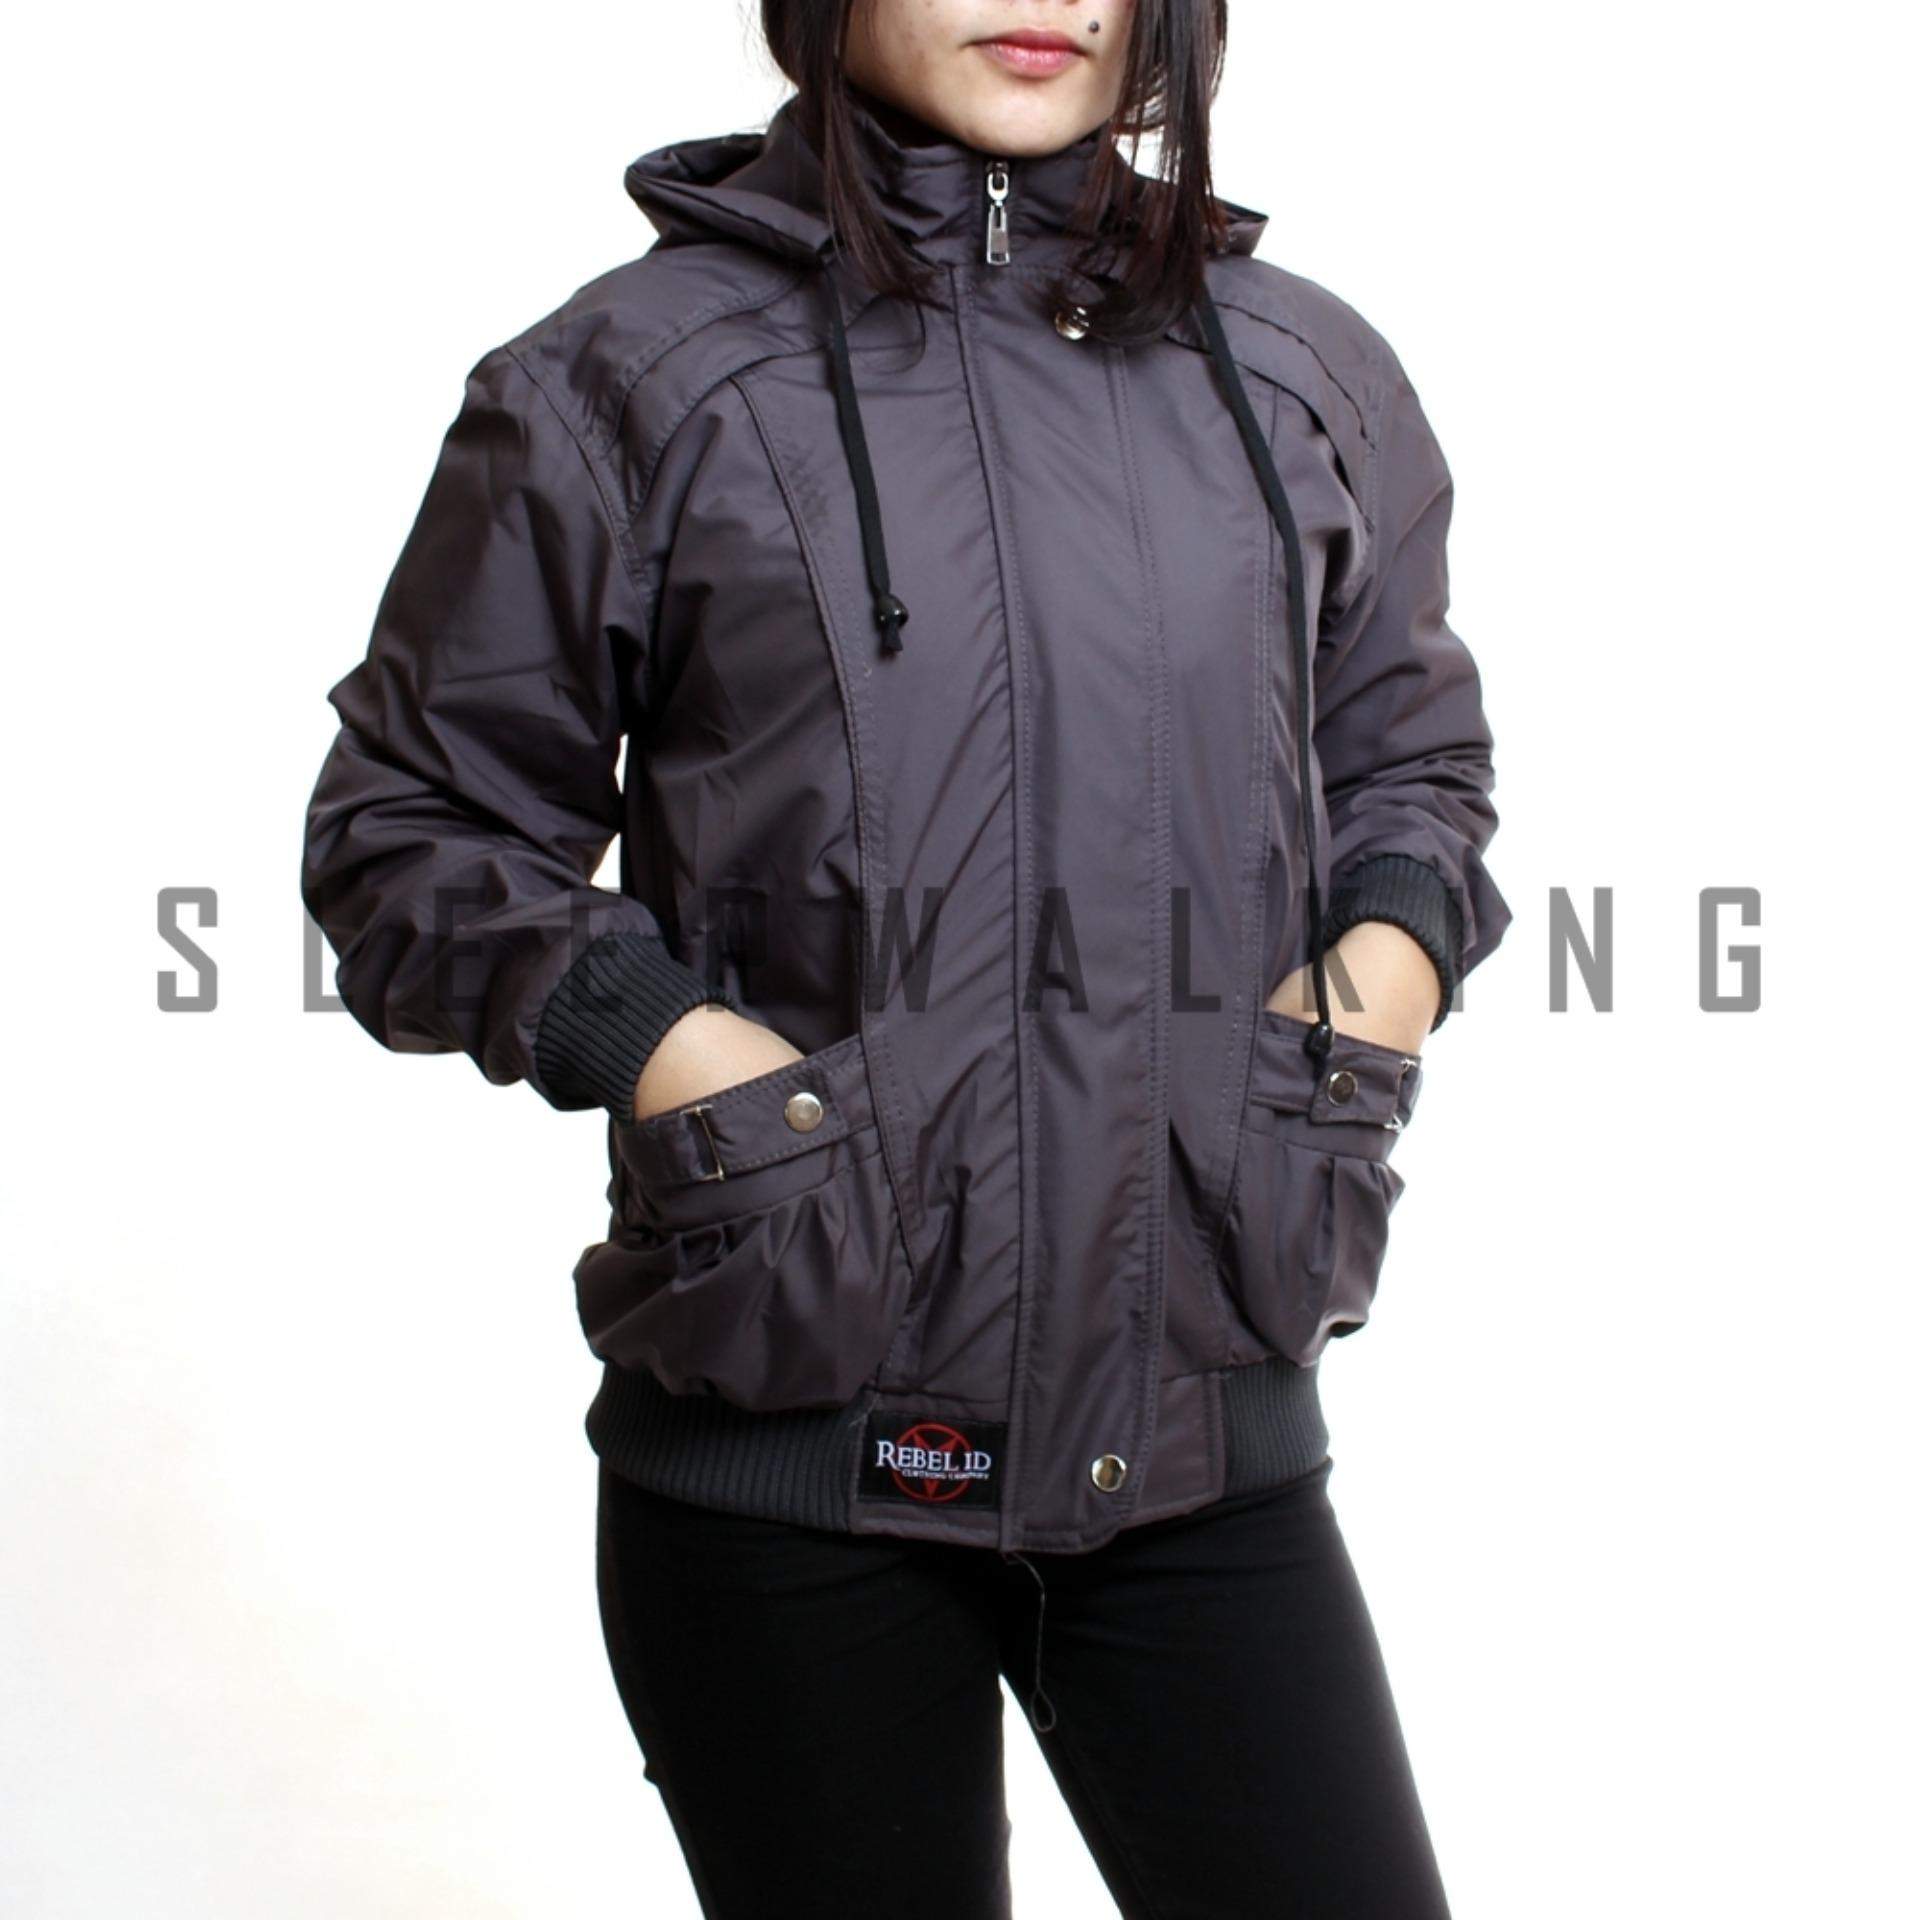 SW JAKET CASUAL WANITA PARASUT WATERPROOF BEST SELLER